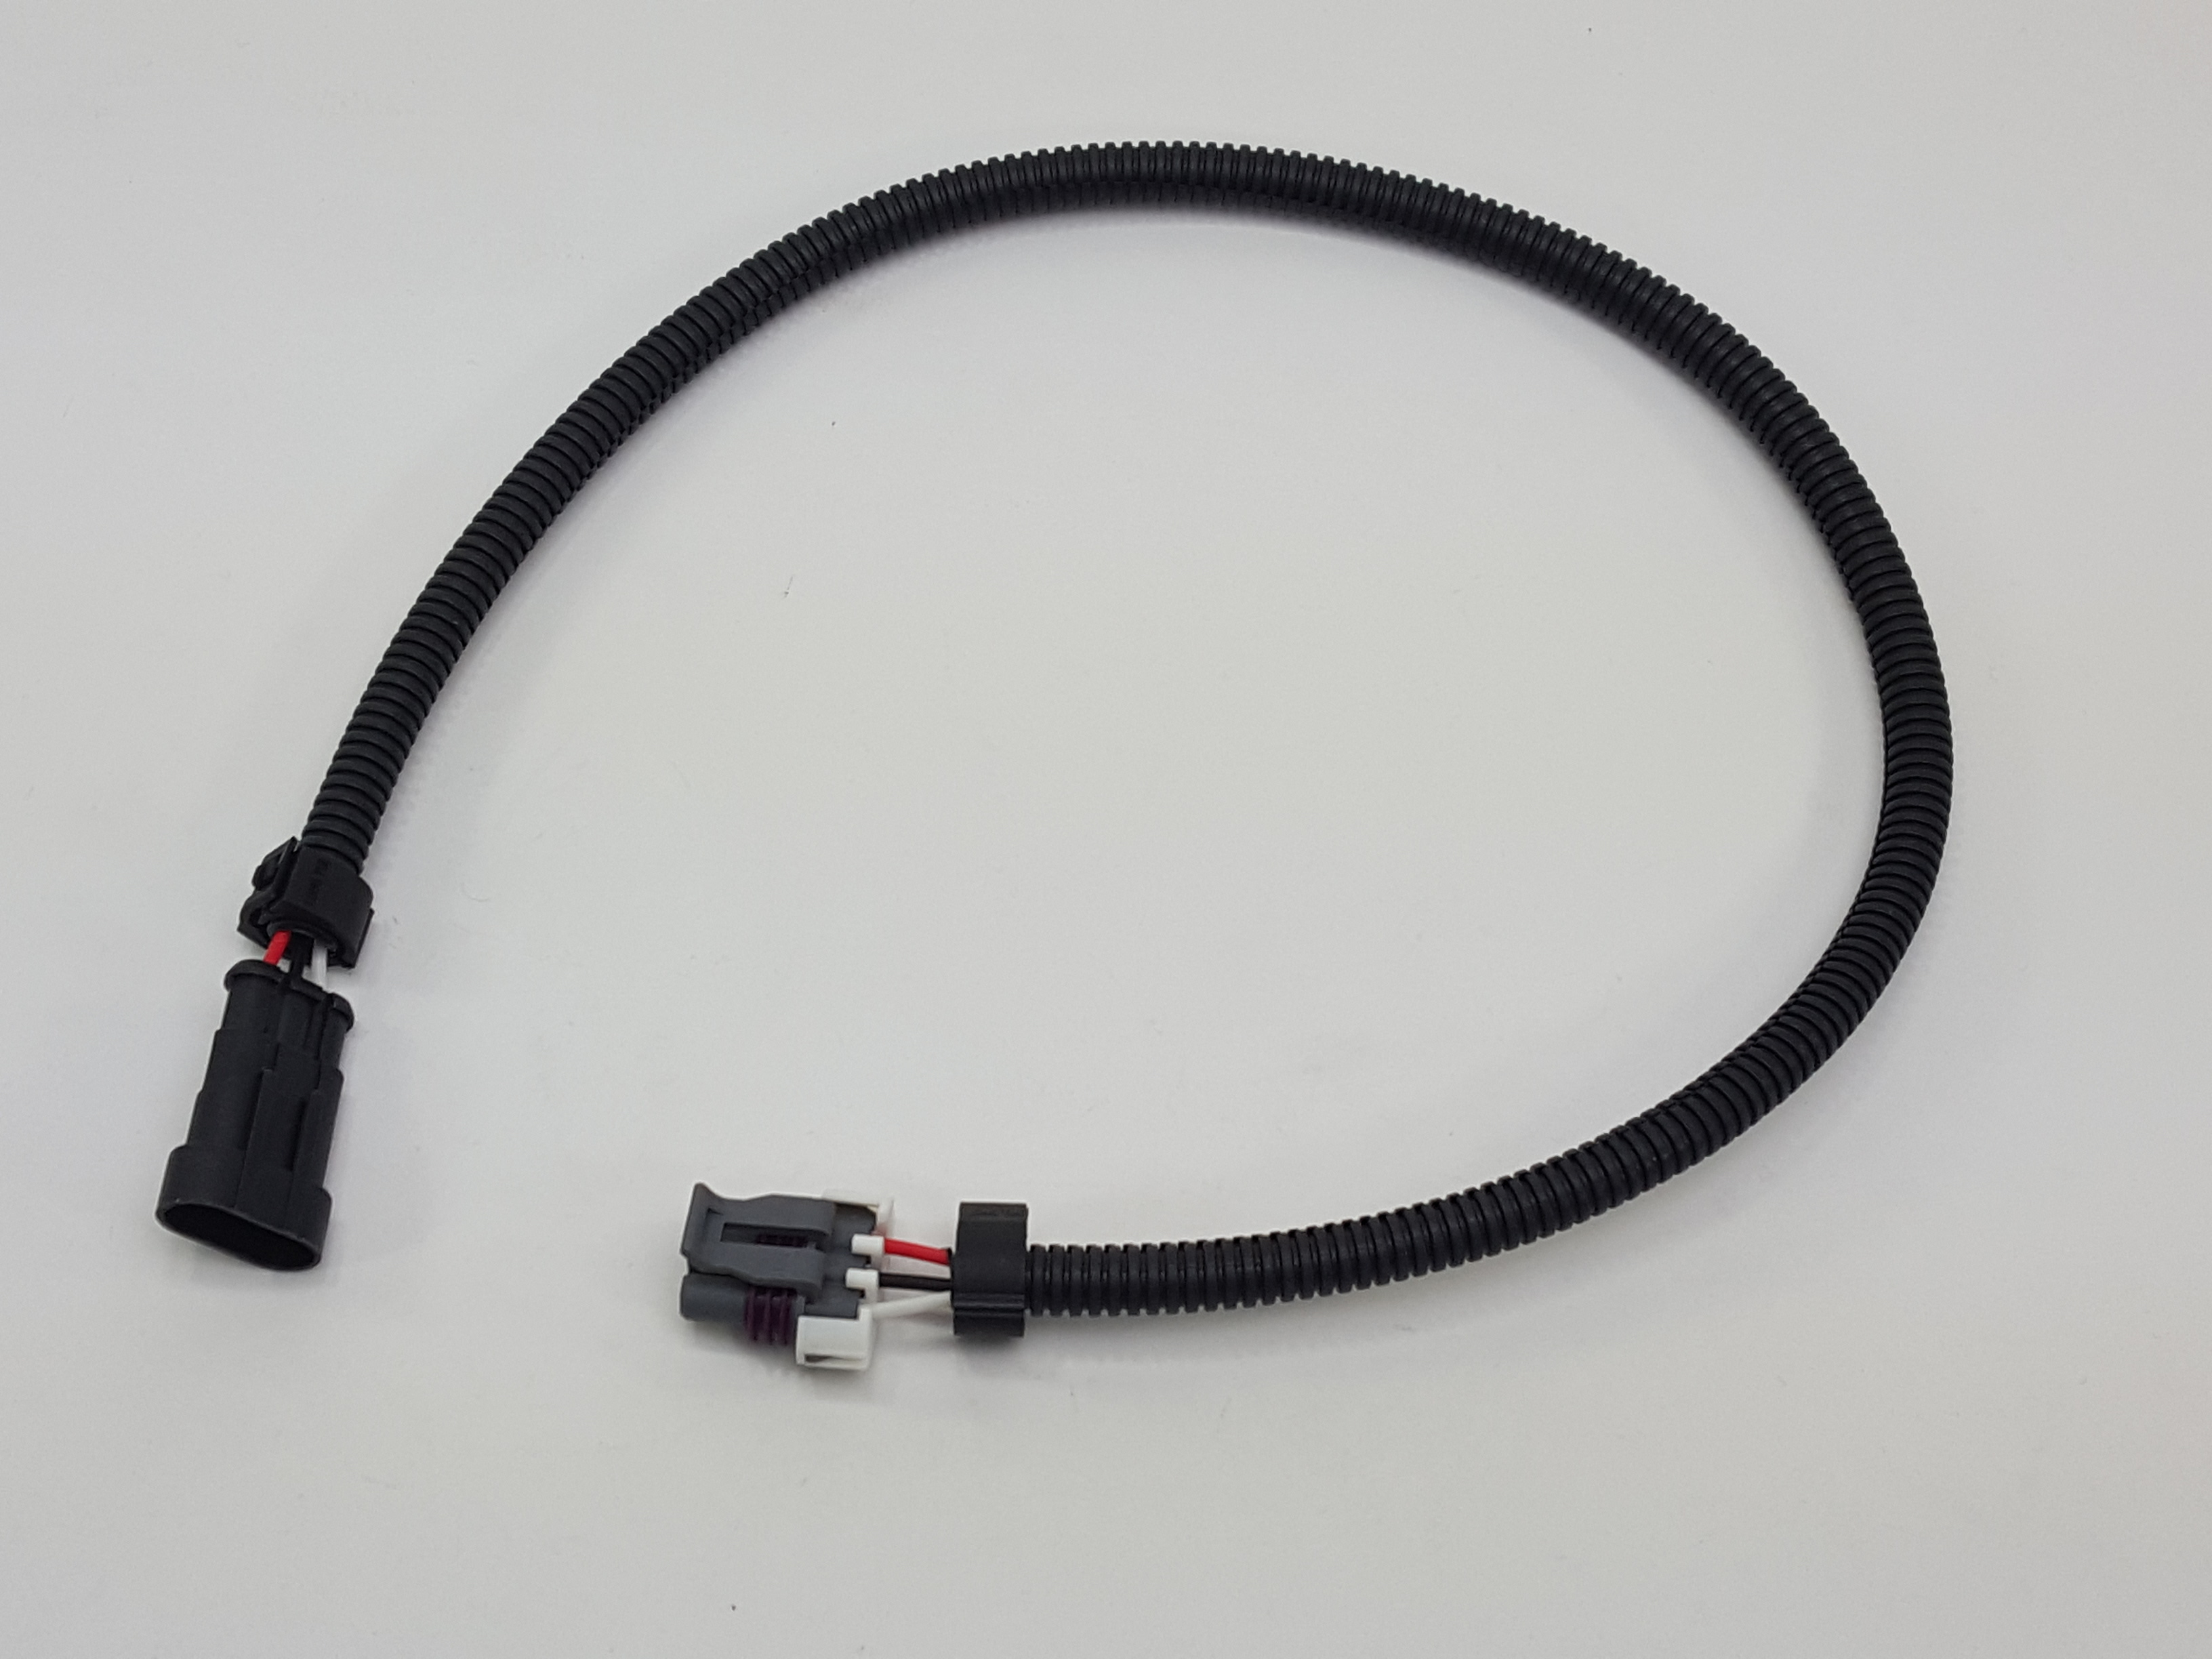 ls1 map extension harness 24 u2033 ls2 ls6 lq4 lq9 warr rh warrperformance com